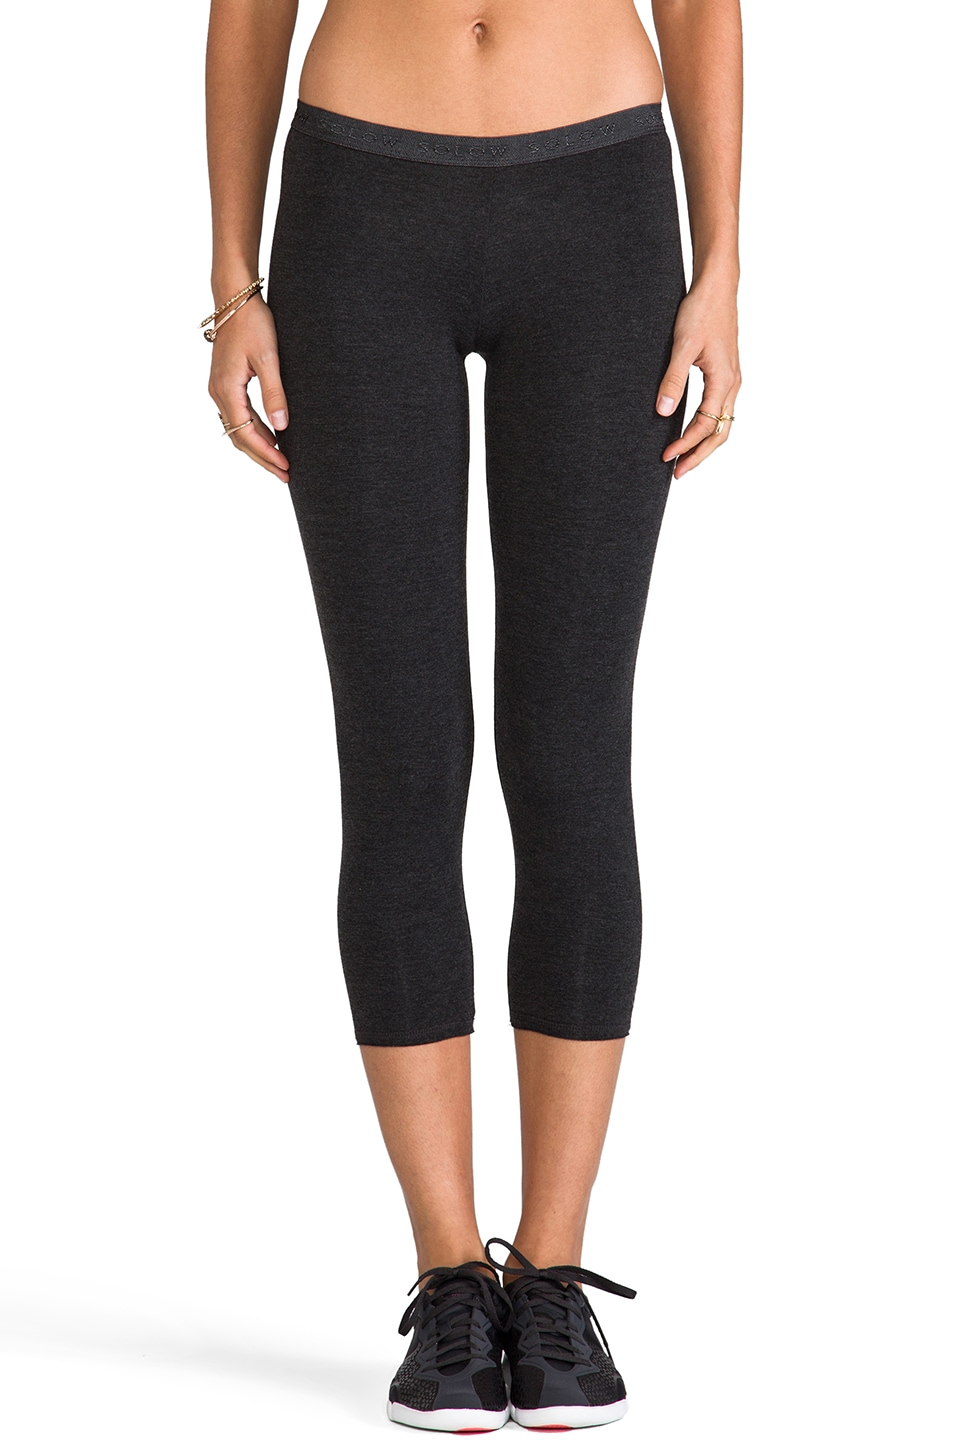 SOLOW Low Rise Crop legging in Heather Charcoal